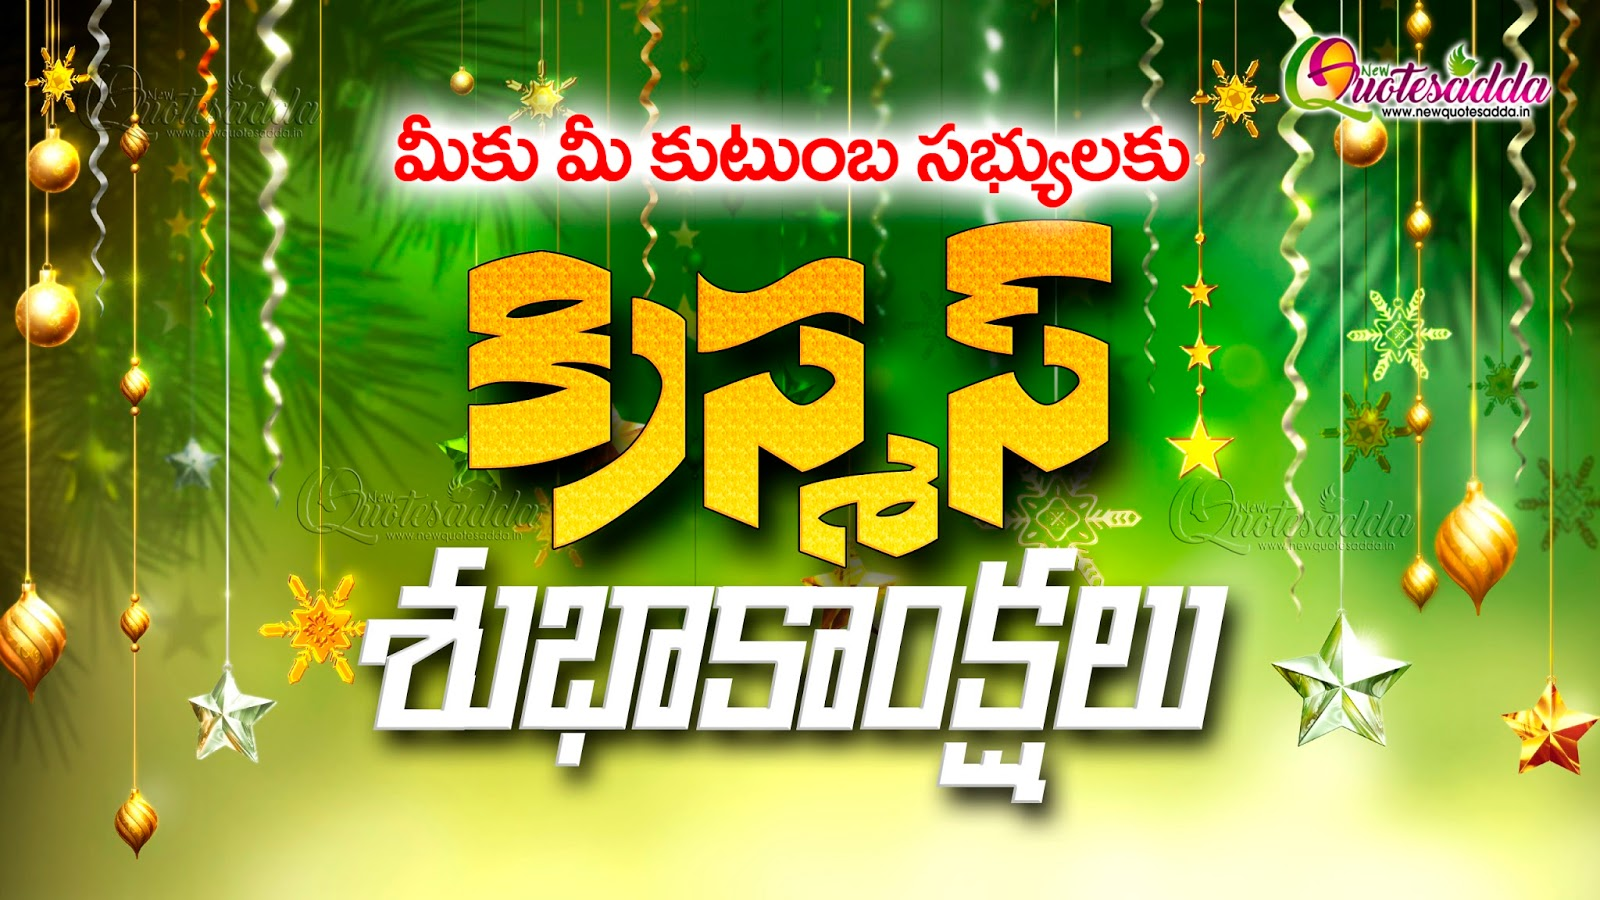 Happy Christmas Telugu Wishes Quotes And Greetings Hd Wallpapers